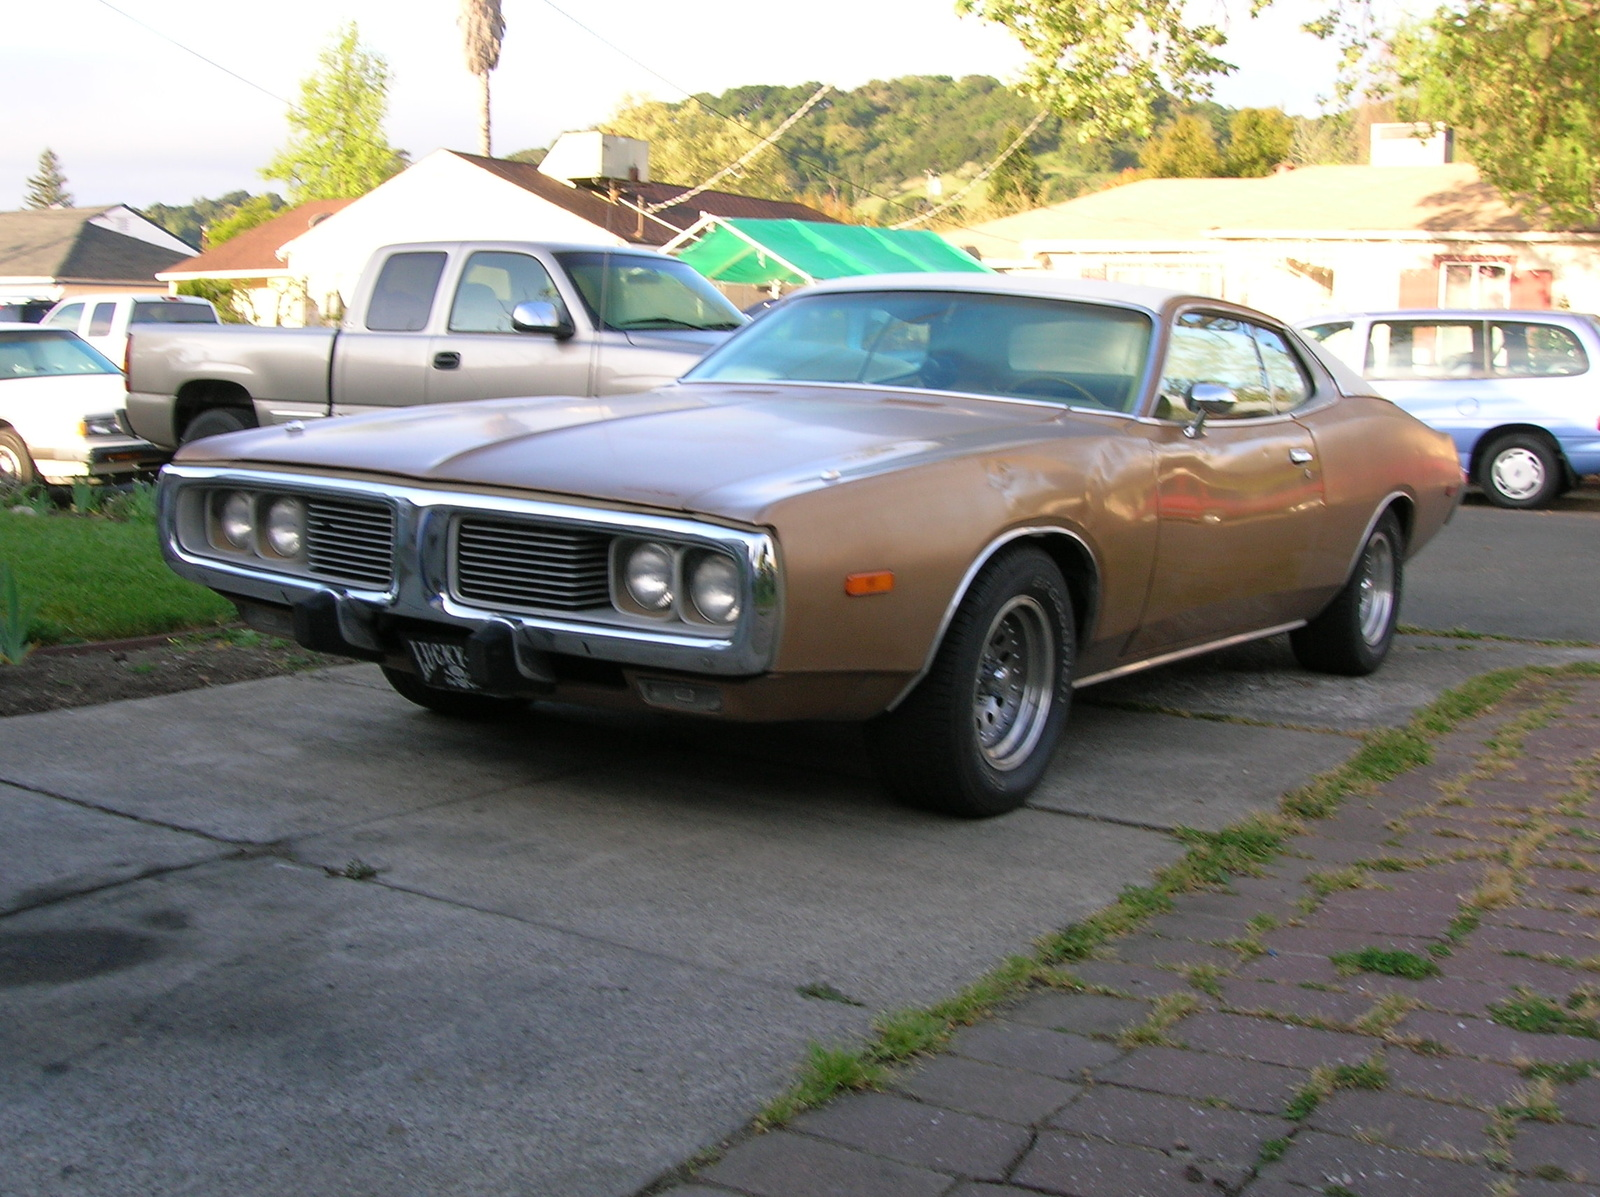 1973 Dodge Charger Exterior Pictures Cargurus